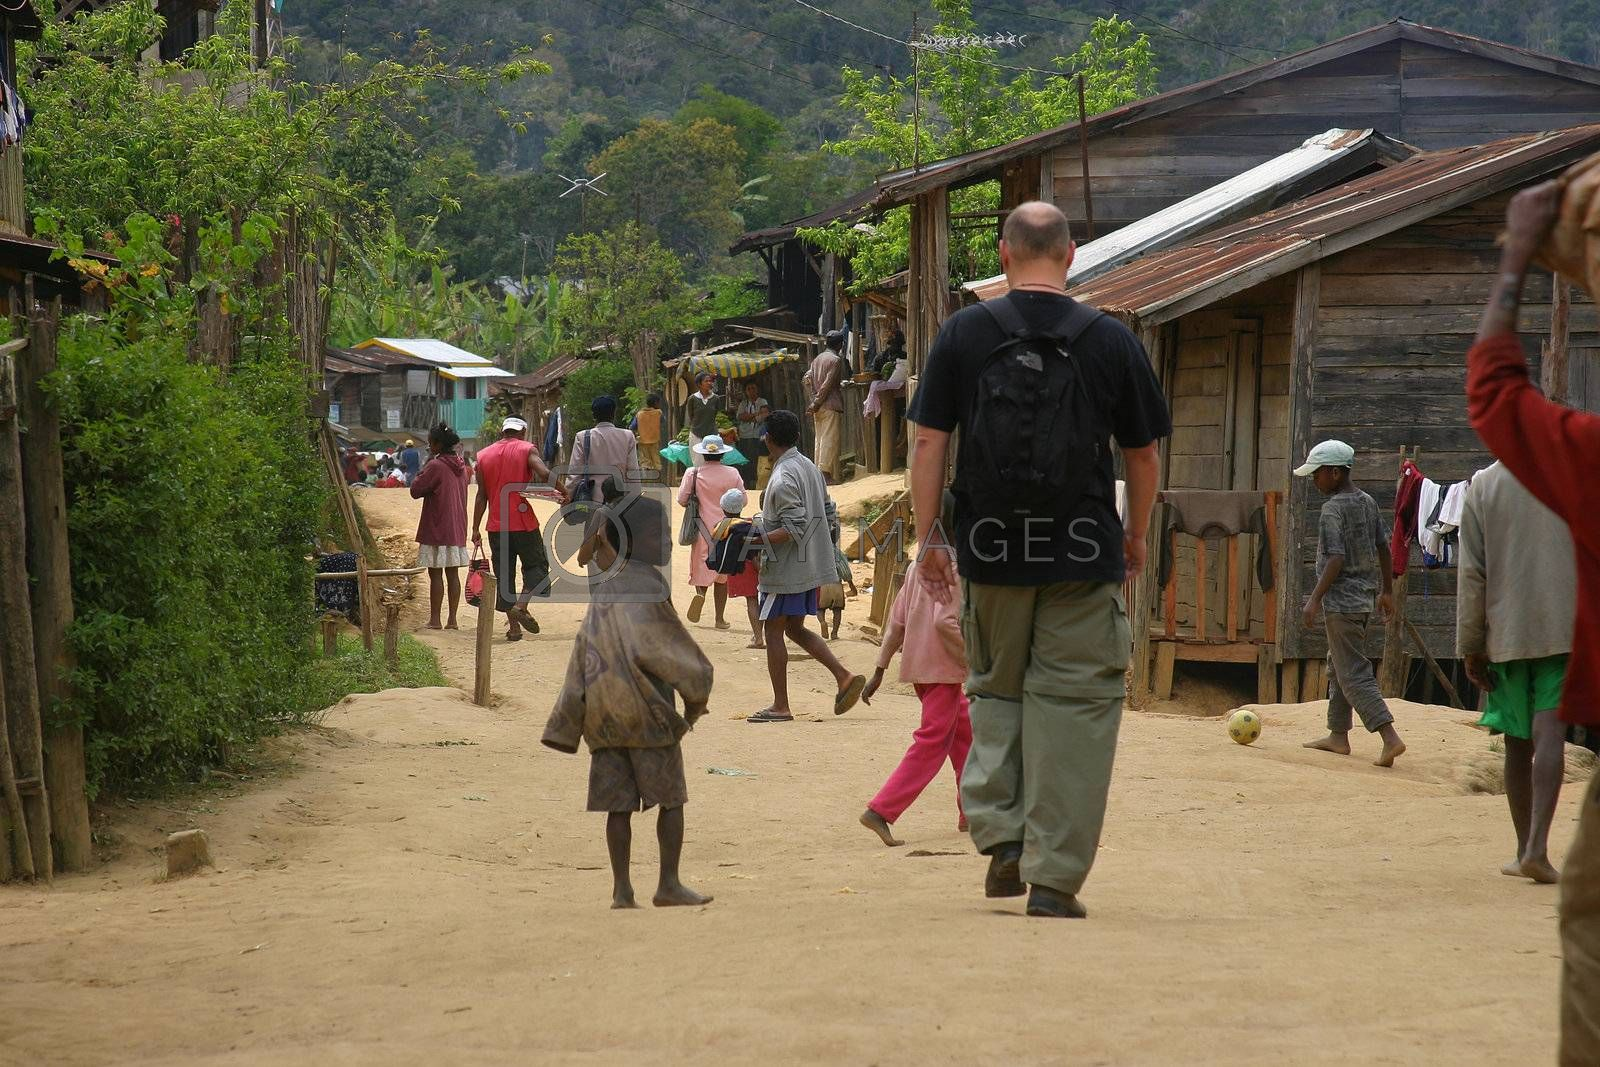 Large tourist man walking among the children in a small town in Madagascar